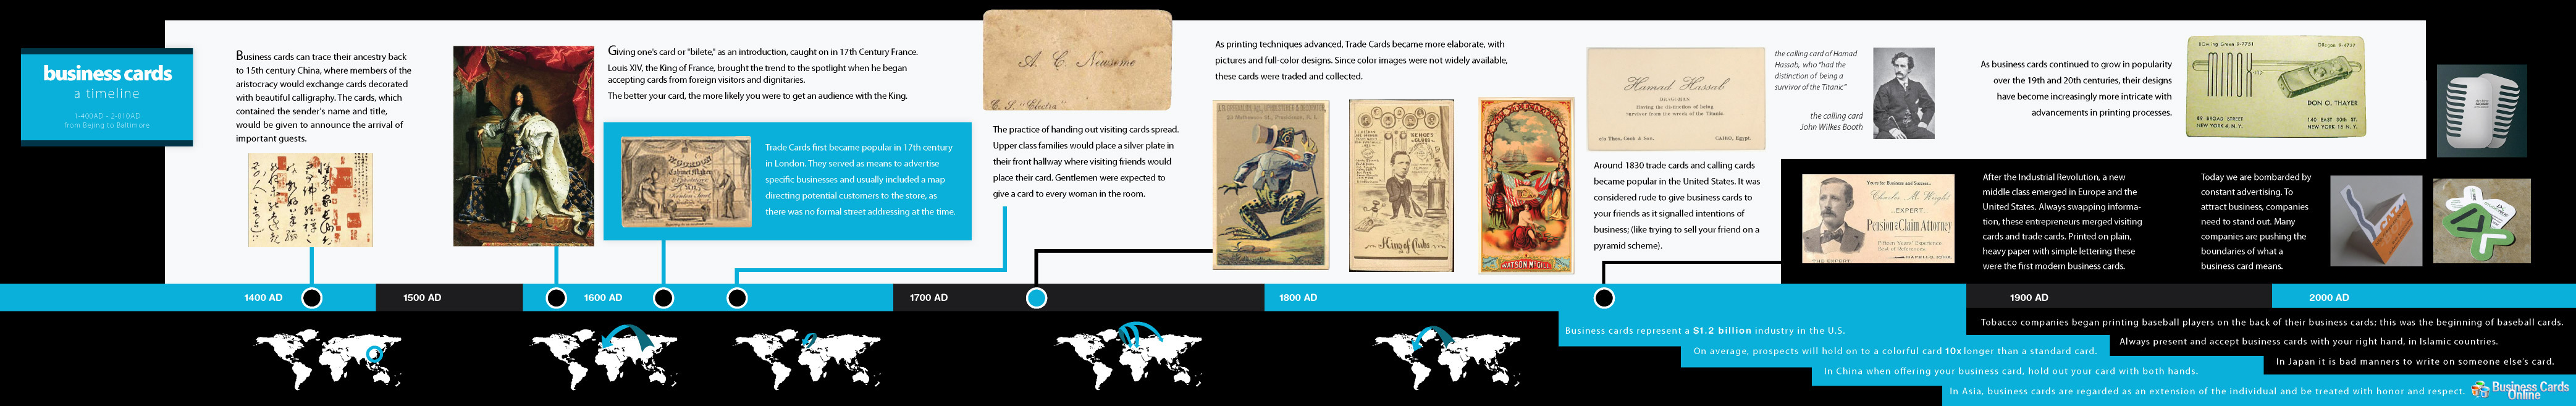 Business Cards History Choice Image - Card Design And Card Template